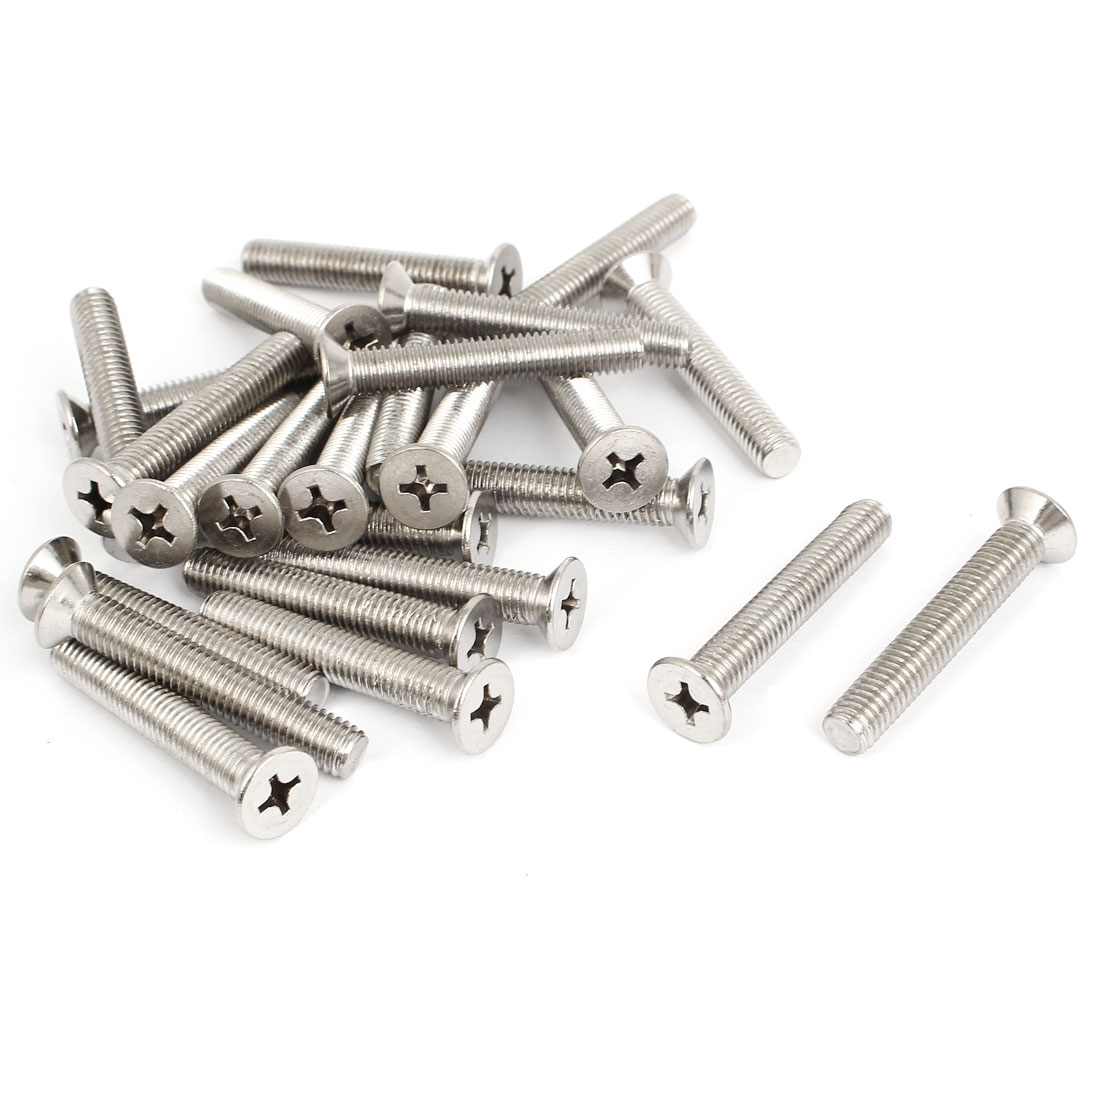 M8x50mm Stainless Steel Countersunk Flat Head Cross Phillips Screw Bolts 25pcs